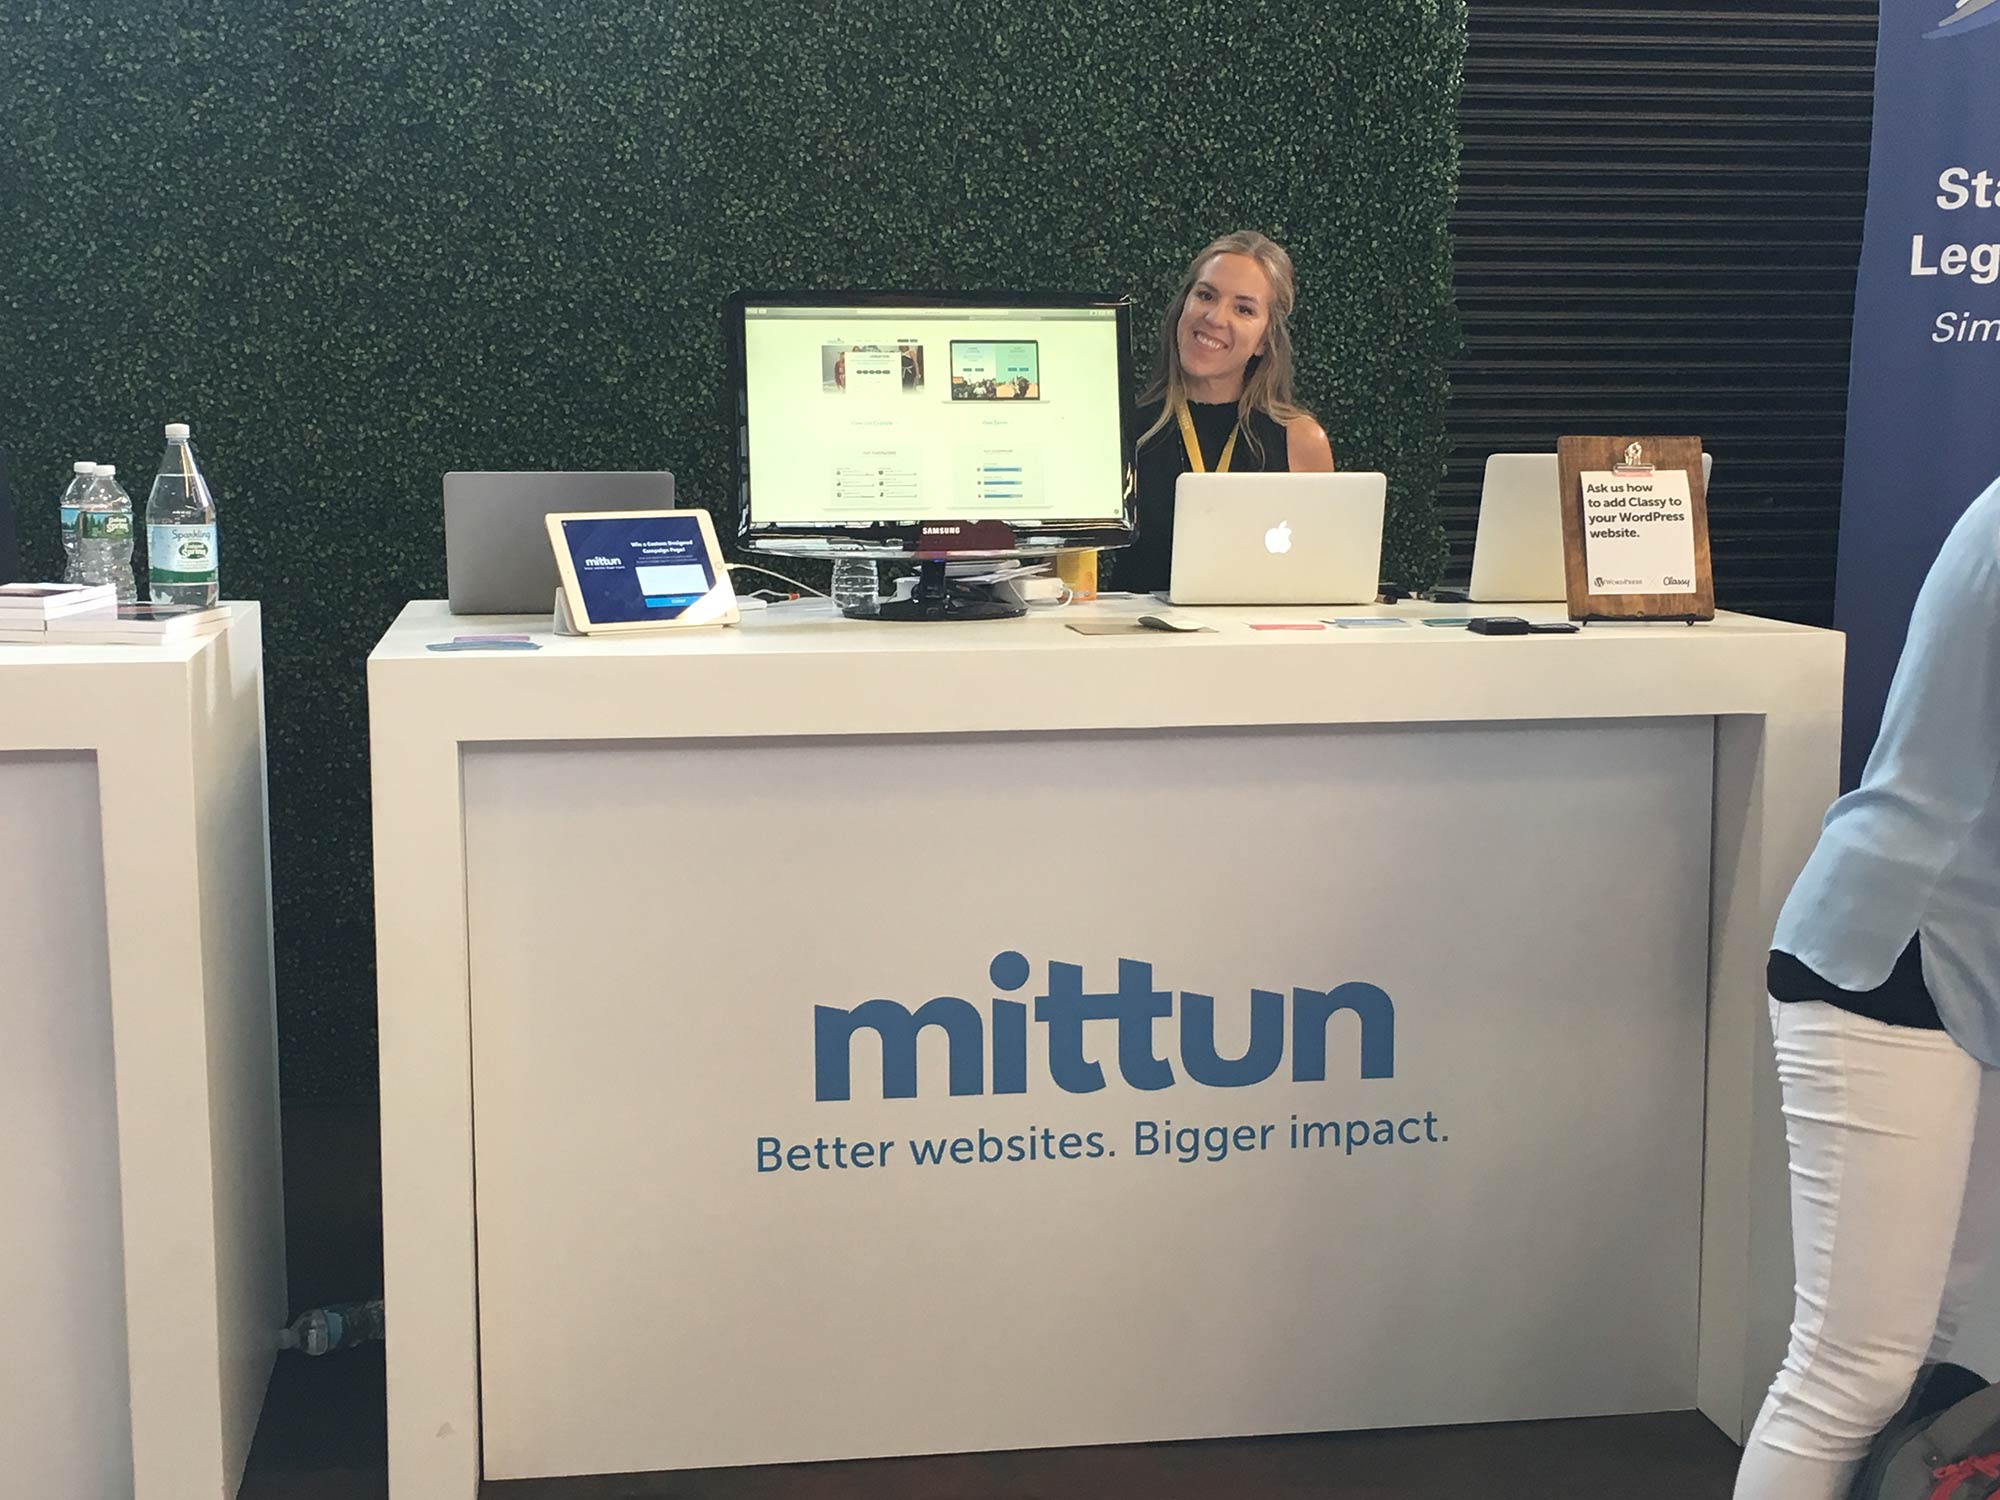 Melissa Monte at the Mittun Booth - Classy Collaborative 2017 Technology Partner